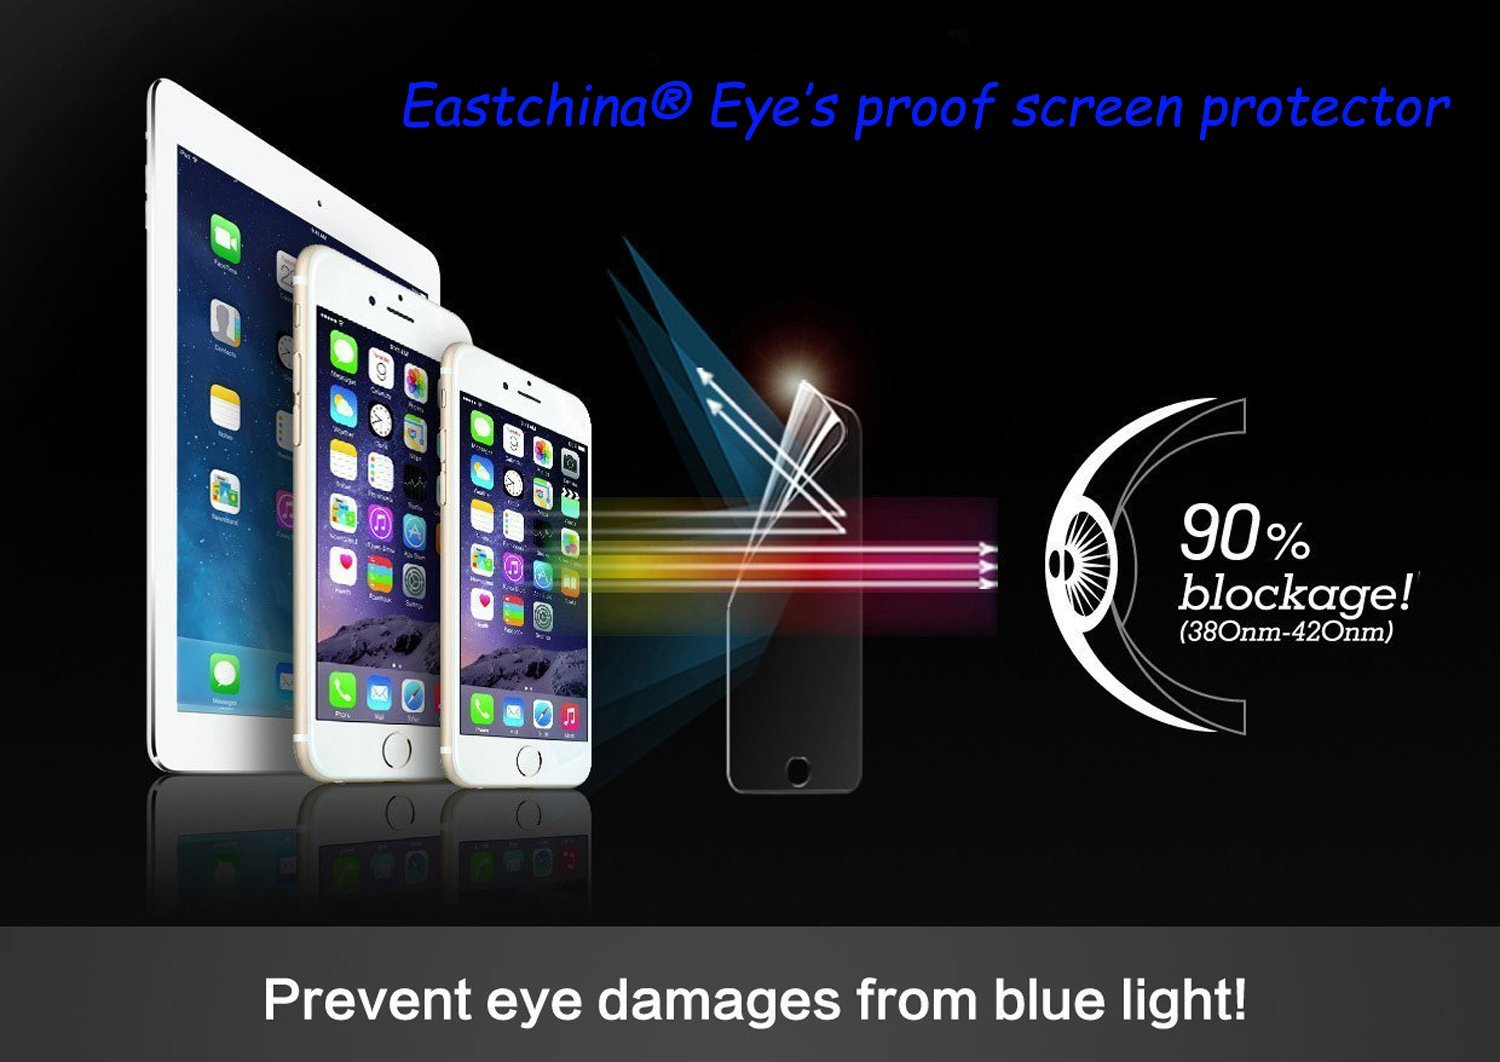 Cheap eye chart light find eye chart light deals on line at get quotations eastchina ipad mini tempered glass screen protector blocks excessive harmful blue light nvjuhfo Gallery